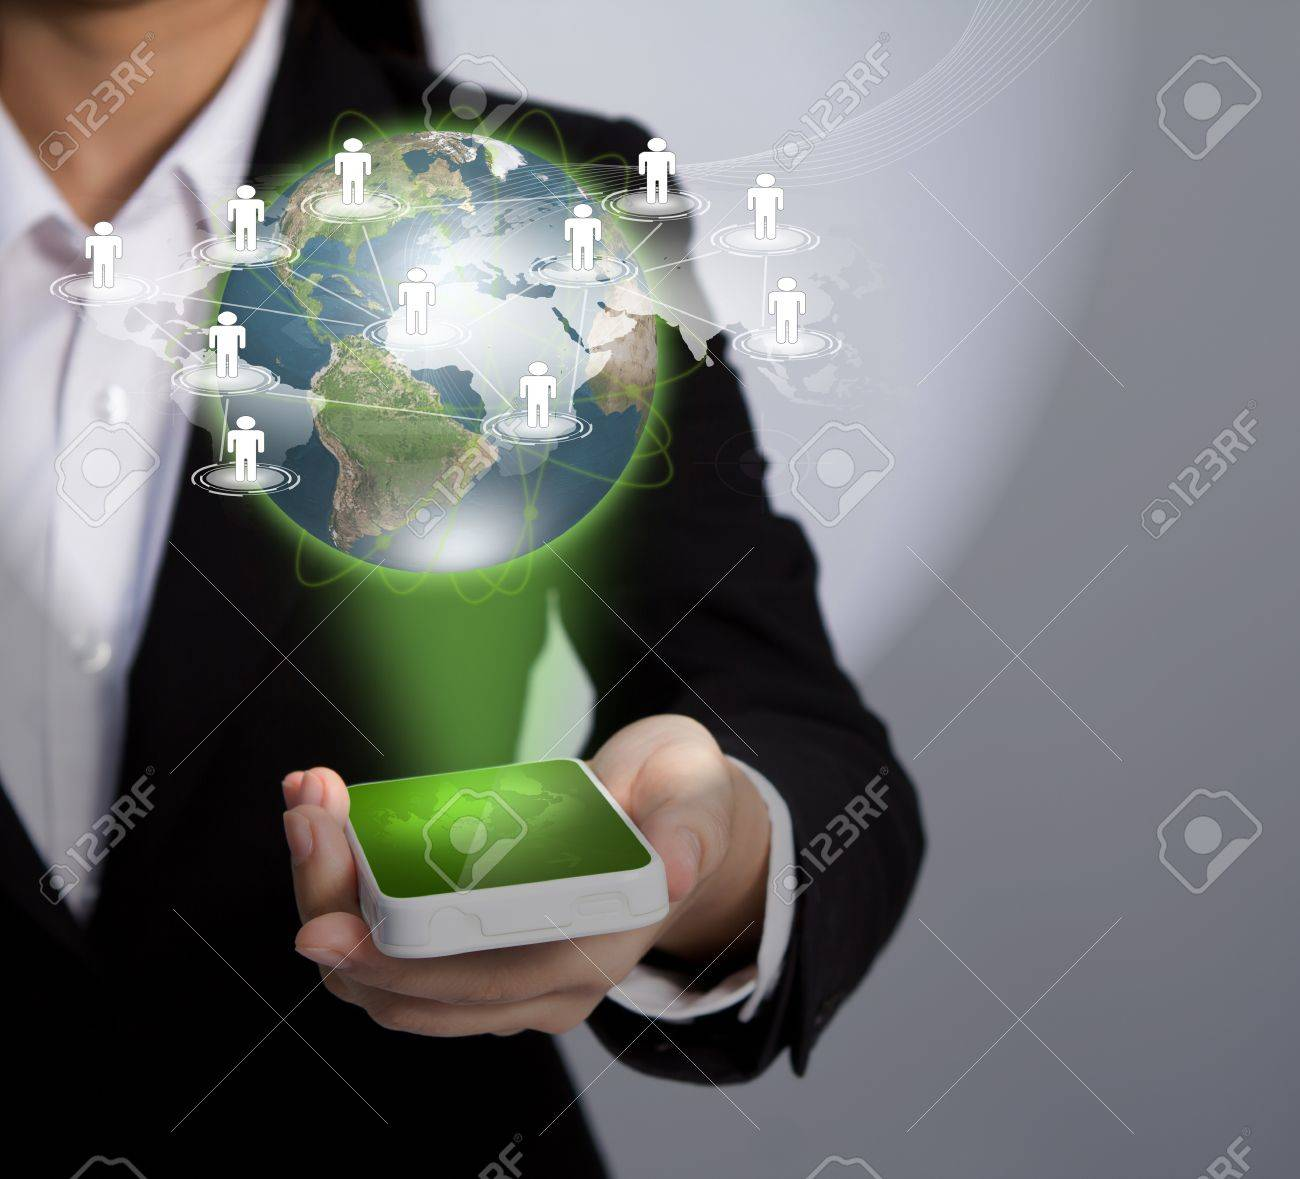 Hand holding a phone show Earth and social network Stock Photo - 11425080